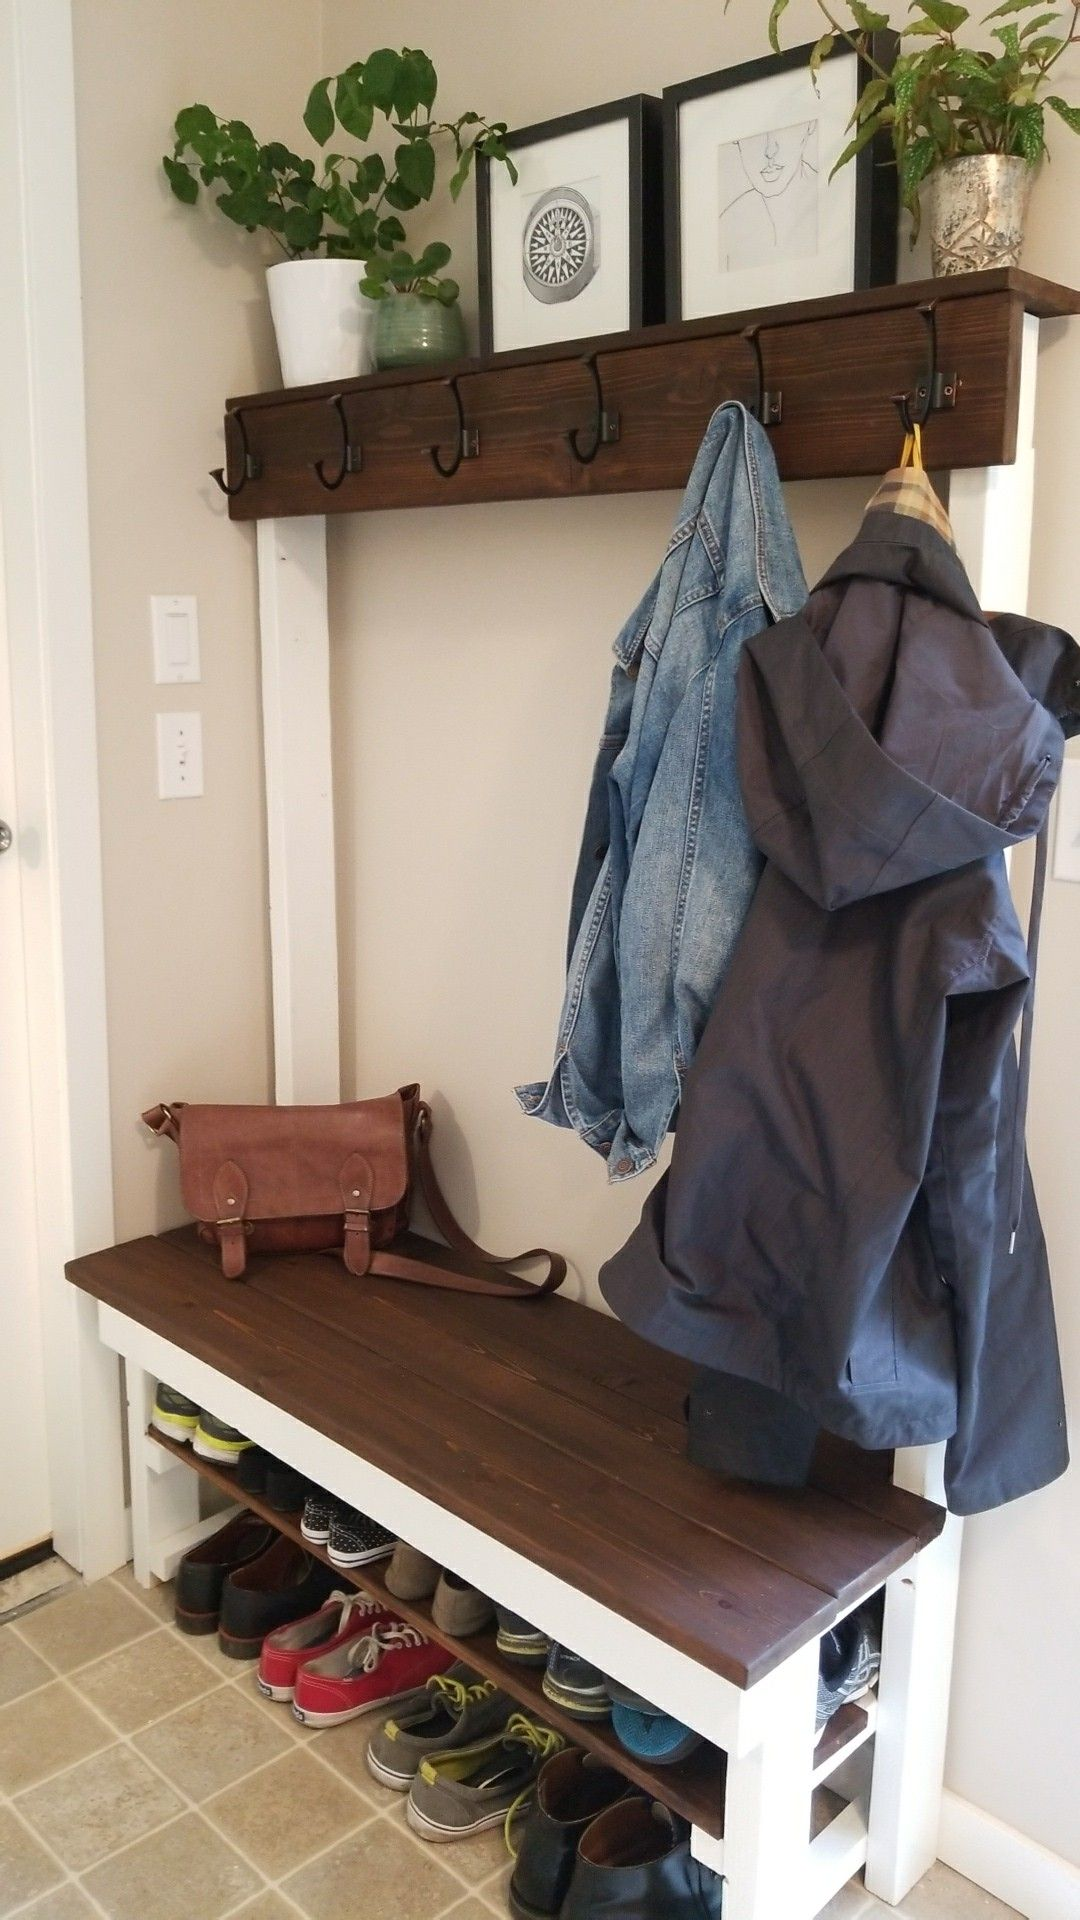 Entry Way Shoeshelf Coat Rack Bench Diy With Some 2x4 And Cedar